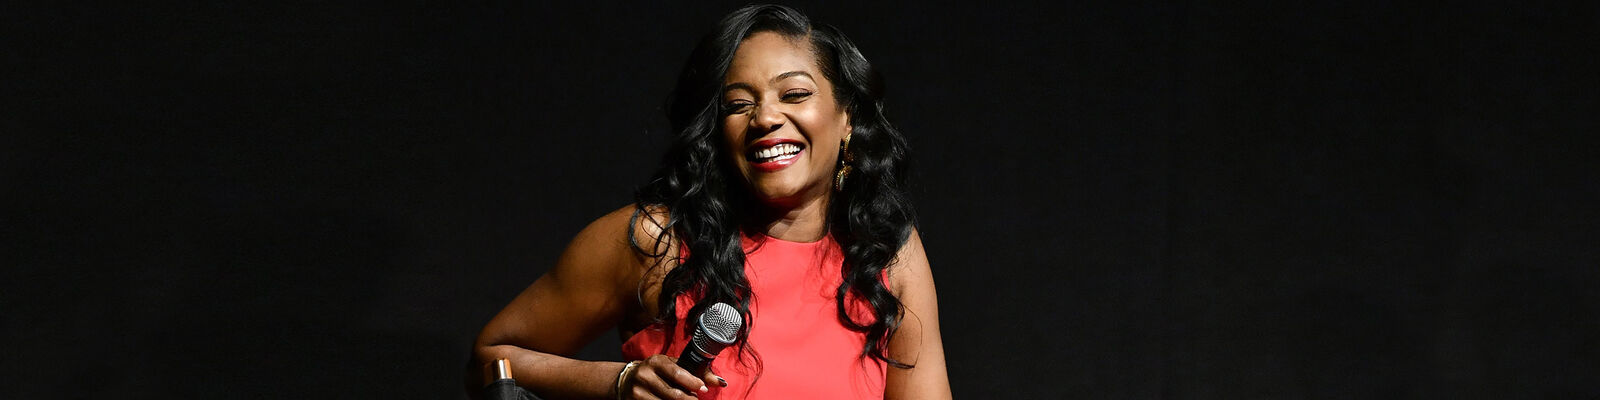 Tiffany Haddish Tickets (Rescheduled from January 4 at Pabst Theatre)